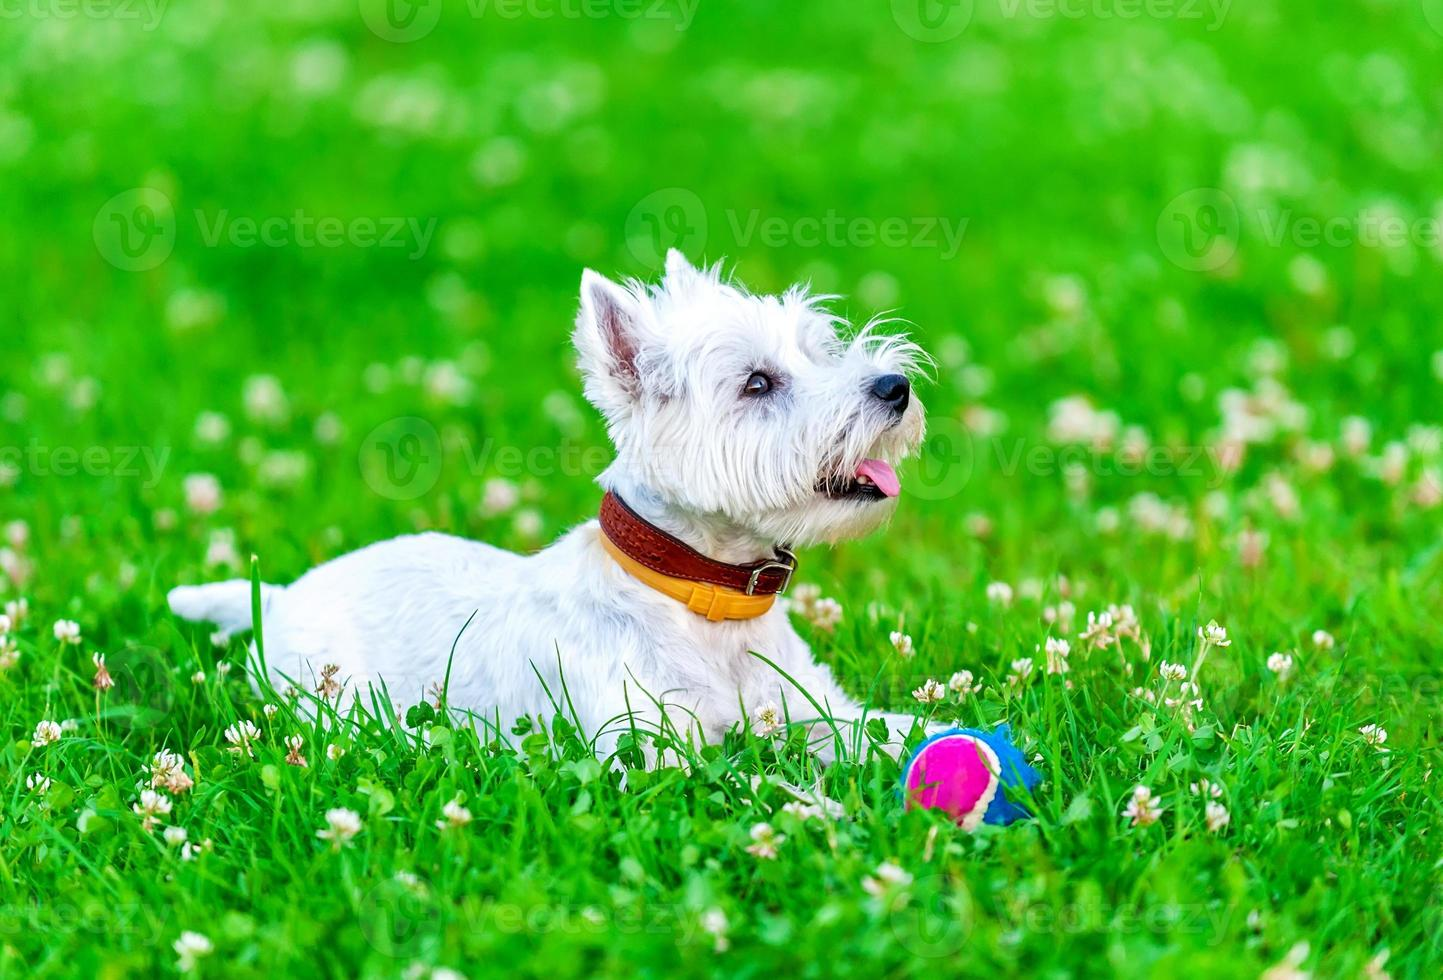 attentive West highland white terrier with ball dog toy photo